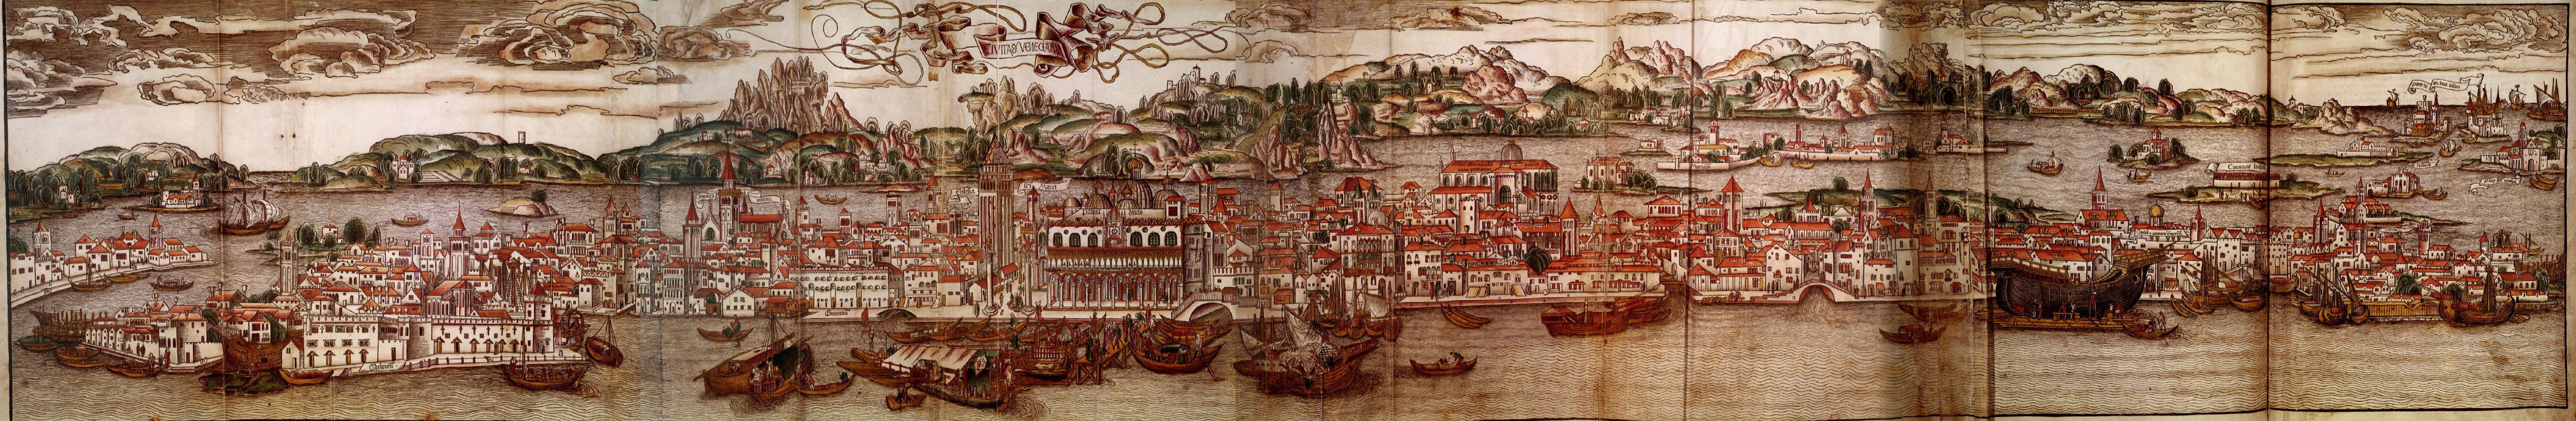 http://upload.wikimedia.org/wikipedia/commons/9/97/Map_of_Venice%2C_15th_century.jpg